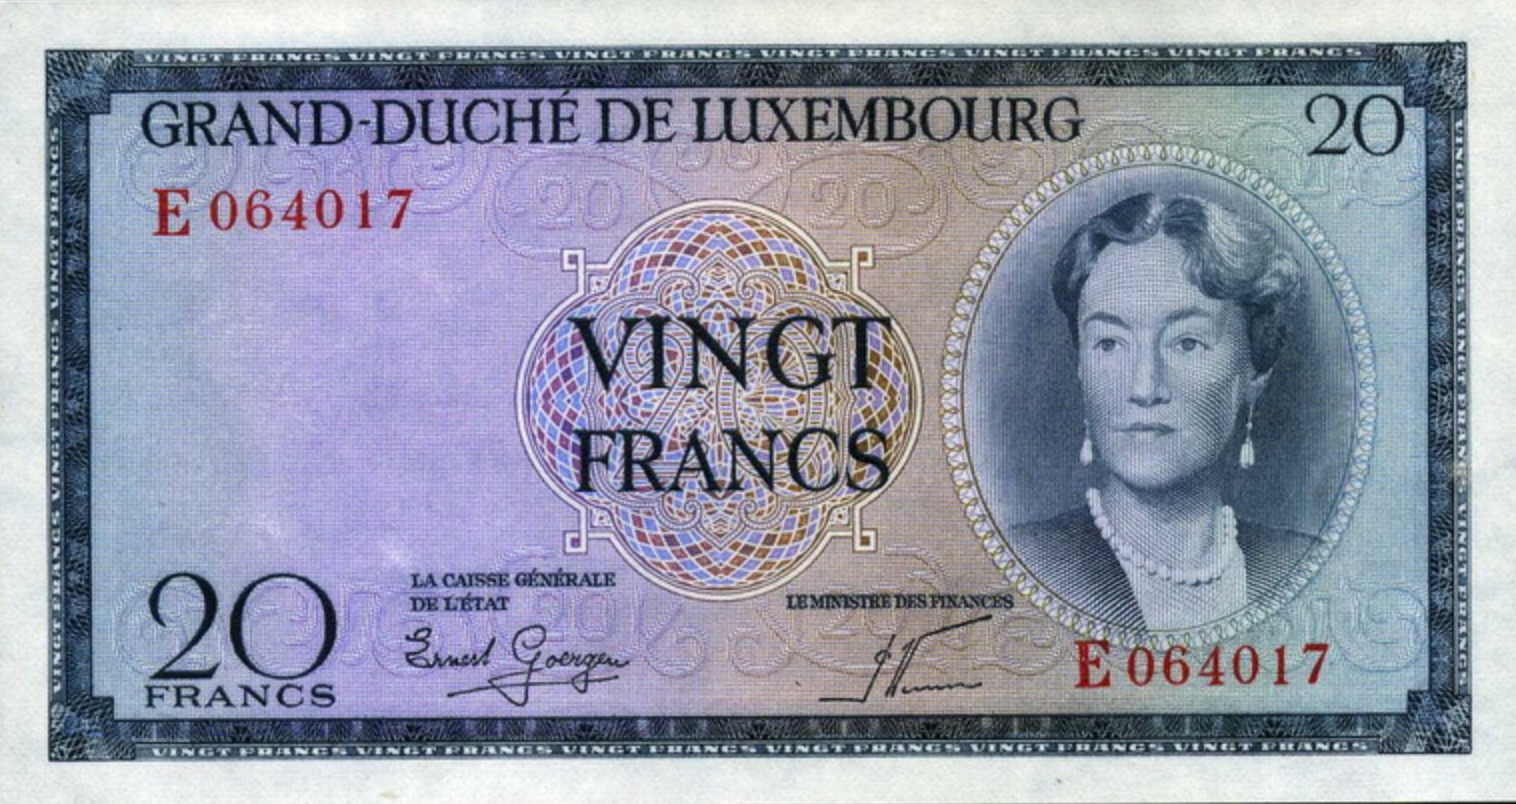 20 Luxembourg Francs banknote (Grand Duchess Charlotte)